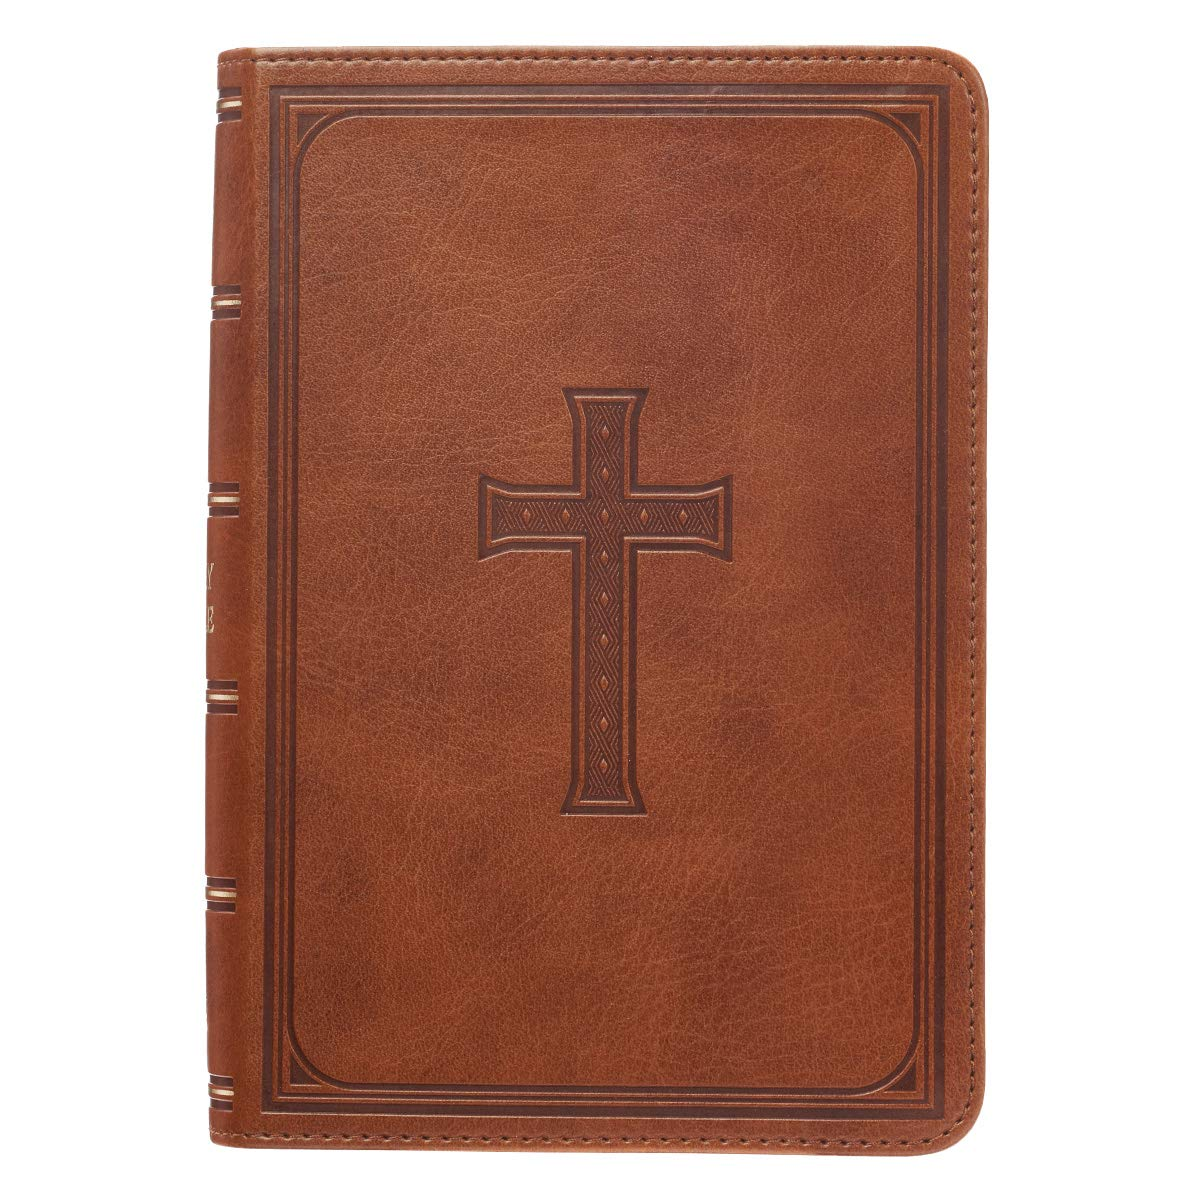 KJV Holy Bible, Large Print Compact Bible, Tan Faux Leather Bible w/Ribbon Marker, Red Letter Edition, King James…